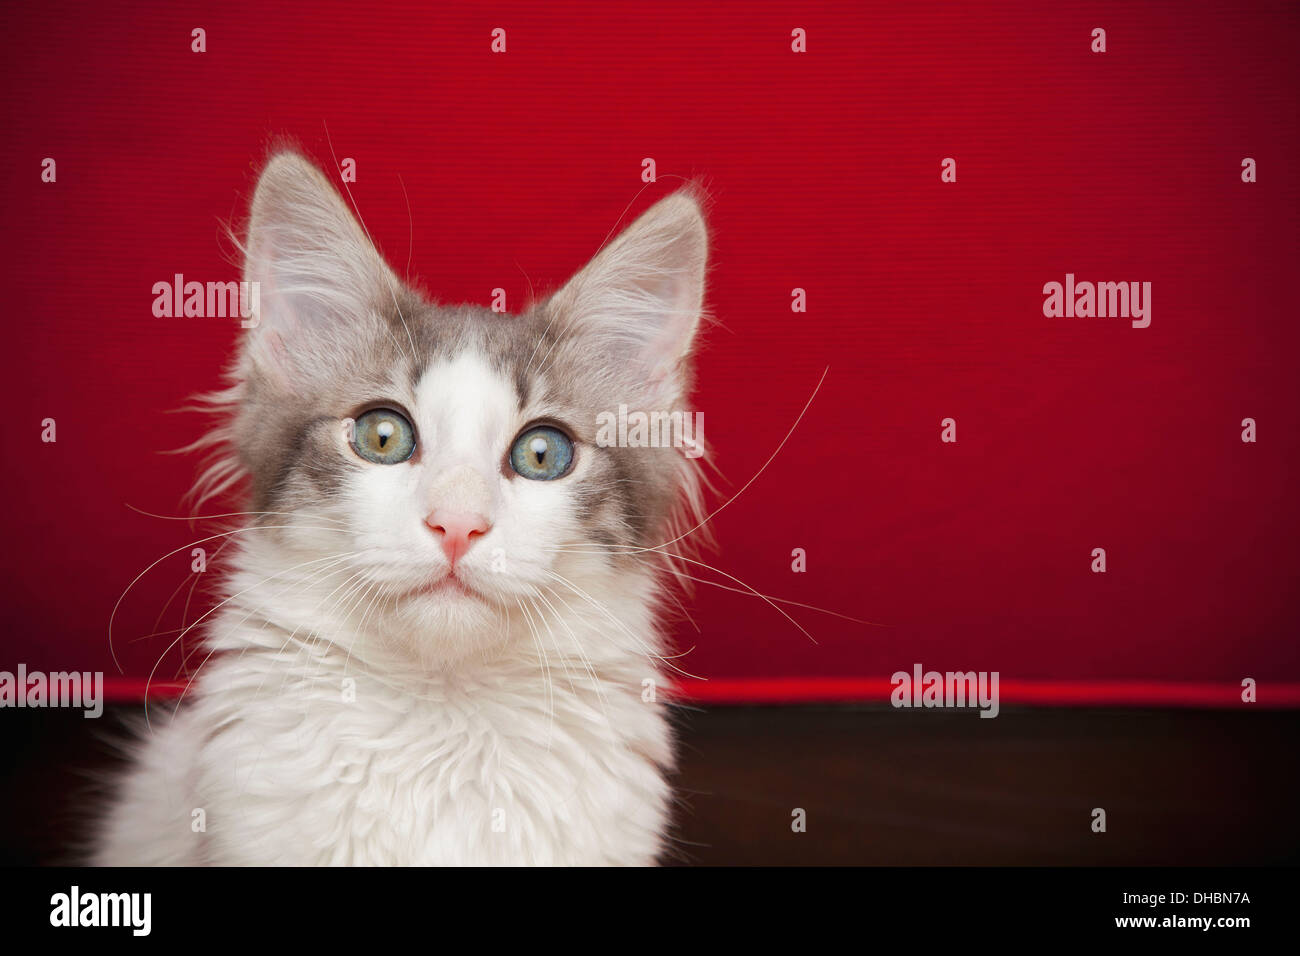 A kitten with eyes wide open looking at the camera. - Stock Image